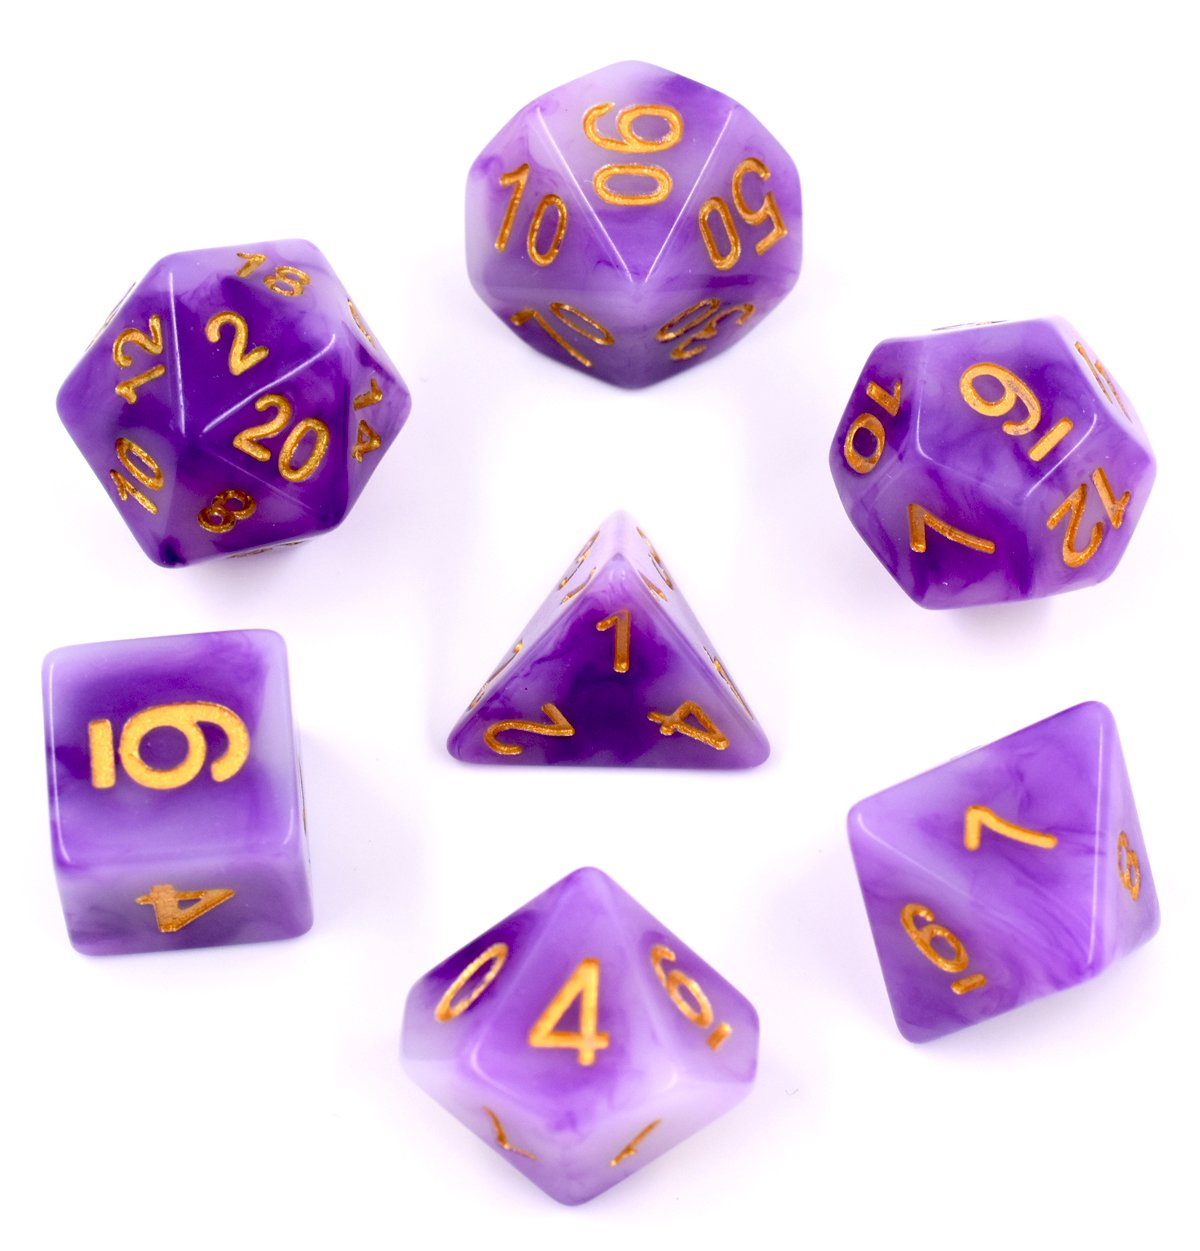 Polyhedral Dnd Dice Sets, Hengda Dice Purple Jade Dice for Dungeons and Dragons Pathfinder DND RPG Tabletop Gaming Dice